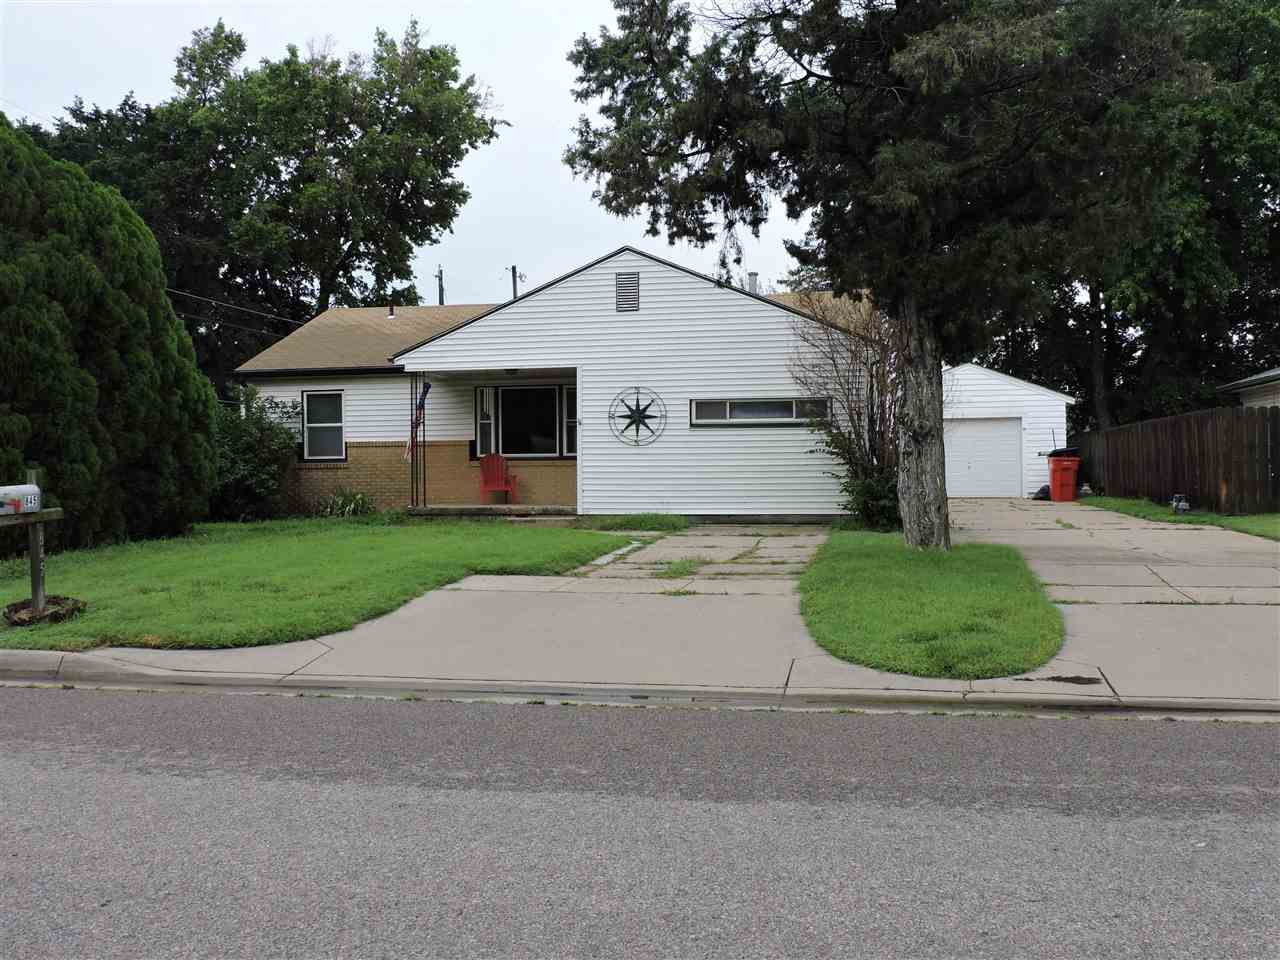 Cute 2 bedroom, 1 bath home with main floor laundry and additional finished room for family room or